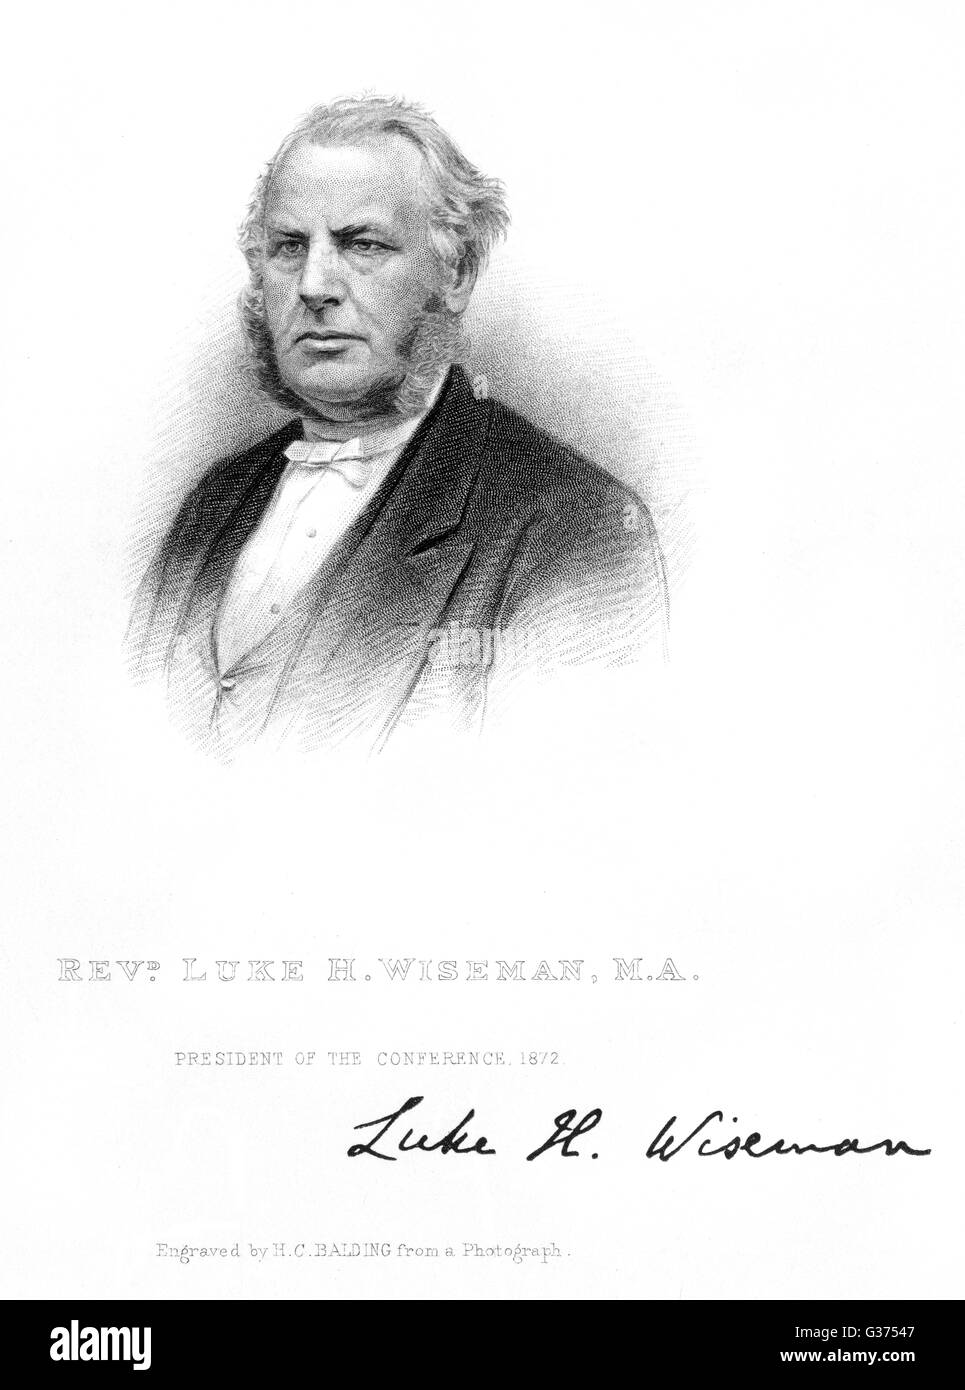 LUKE WISEMAN churchman, president of the  Wesleyan Conference 1872        Date: CIRCA 1872 - Stock Image